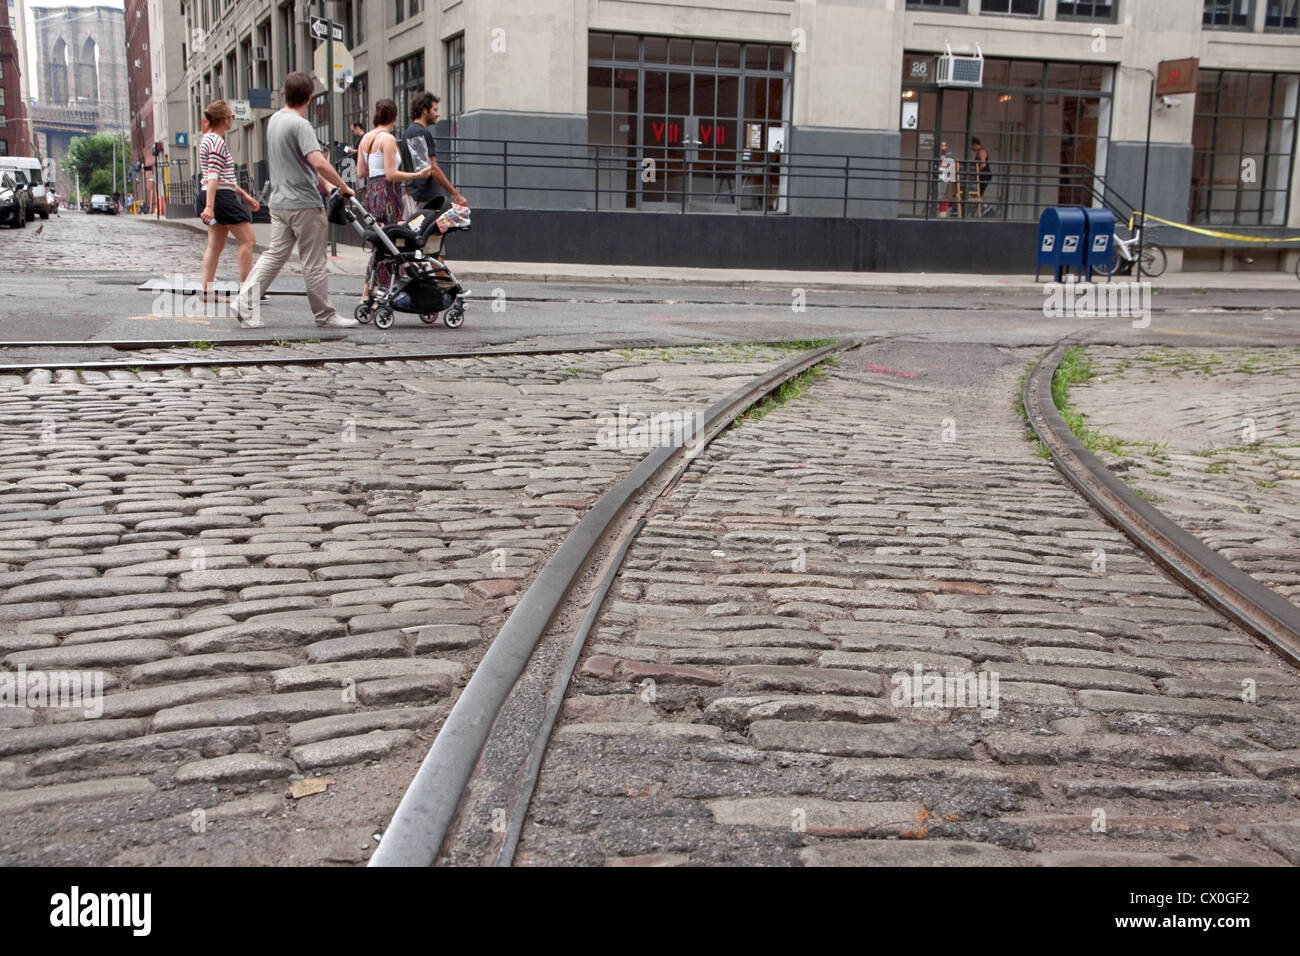 Tourists Stroll Along Old Cobblestone Streets Amp Trolley